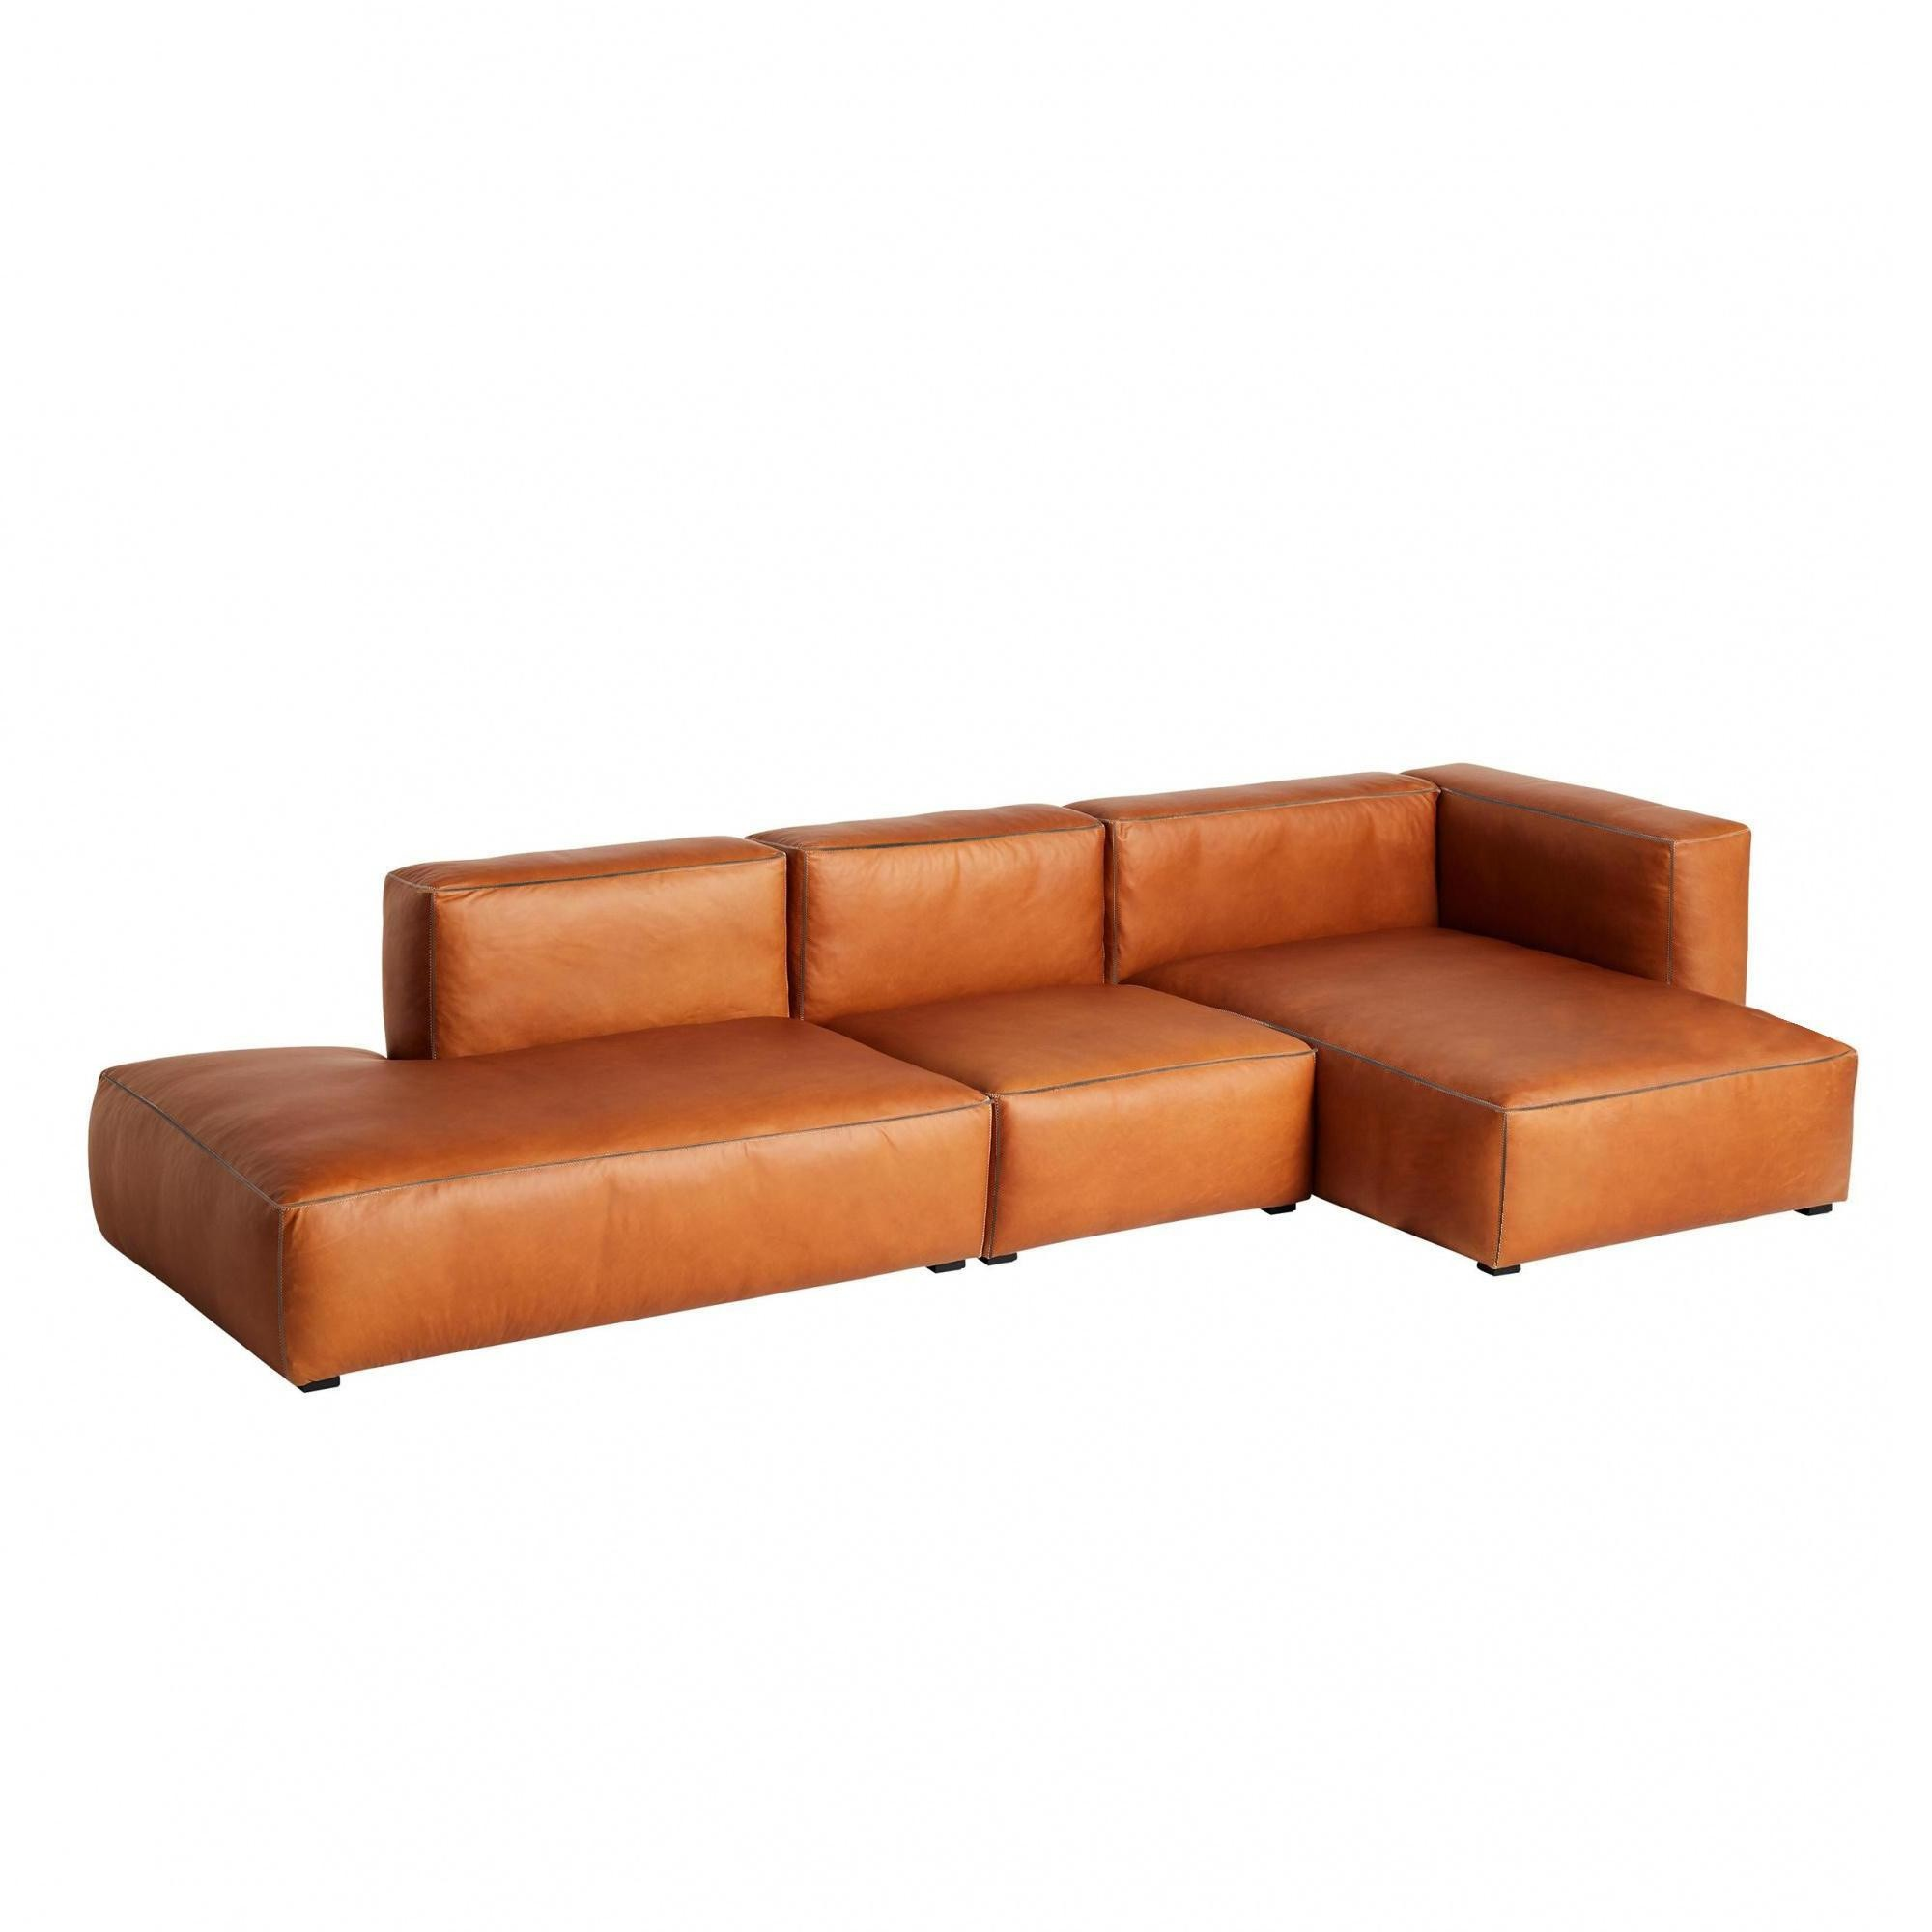 - HAY Mags Soft 3 Seater Sofa Leather Right 334x153x67cm